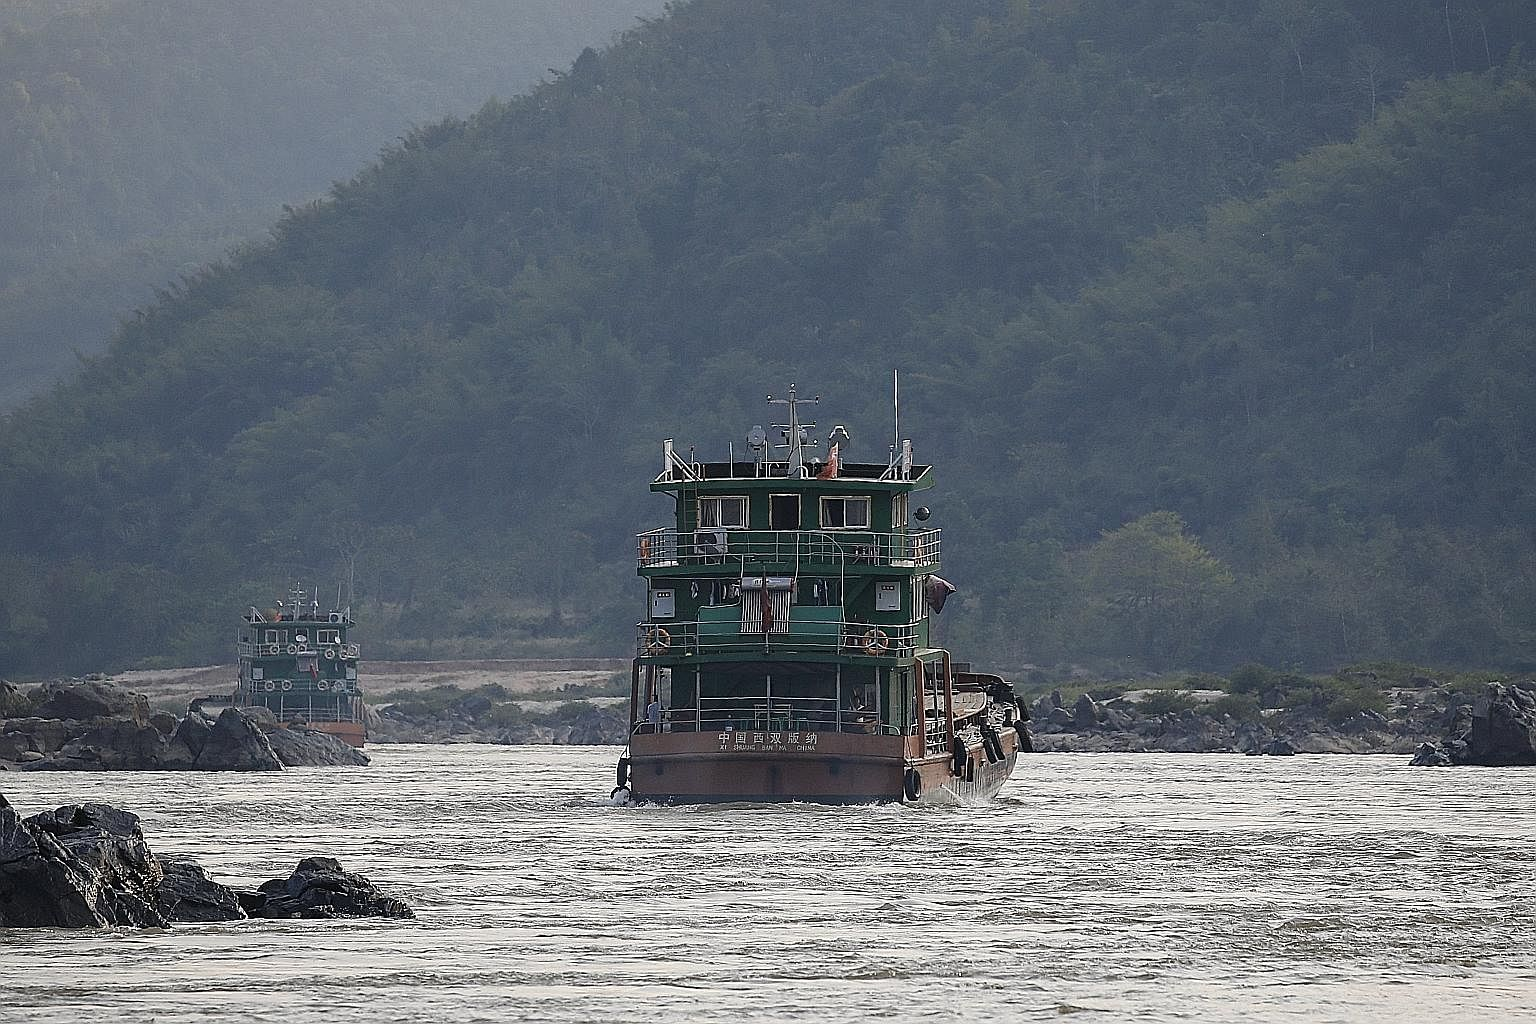 Chinese cargo ships on the Mekong River. Last week, Chinese Premier Li Keqiang offered the five Asean countries along the Mekong River US$11.5 billion (S$15.5 billion) in loans and credit for infrastructure and other projects.